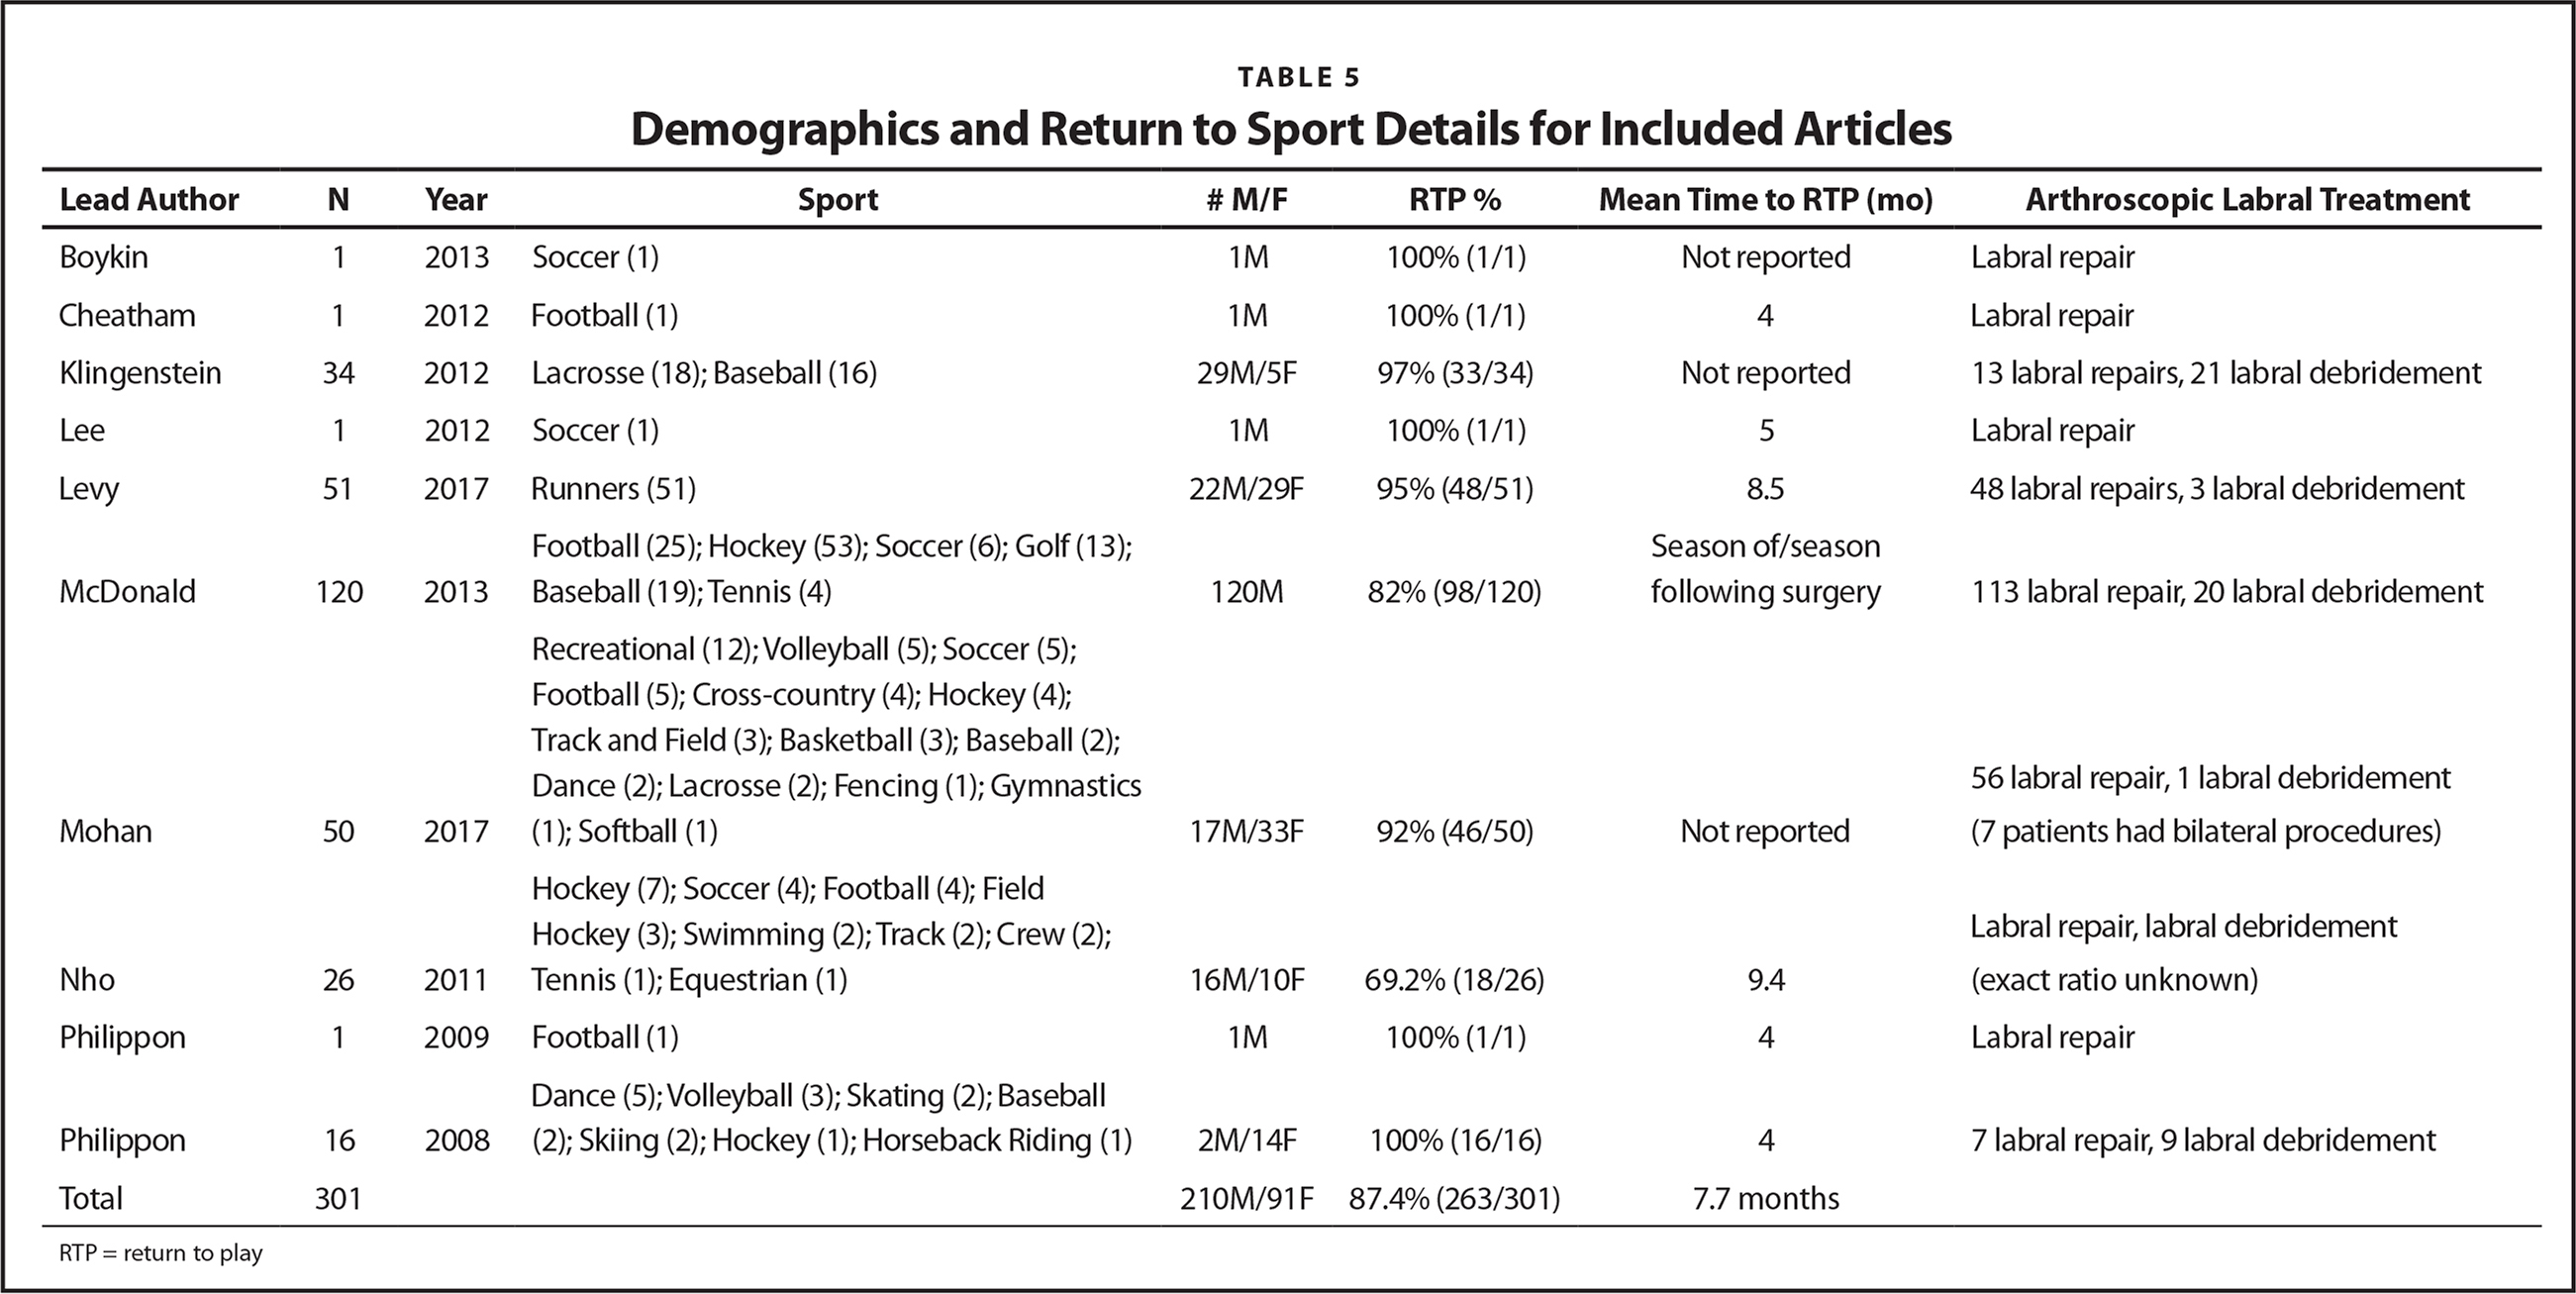 Demographics and Return to Sport Details for Included Articles